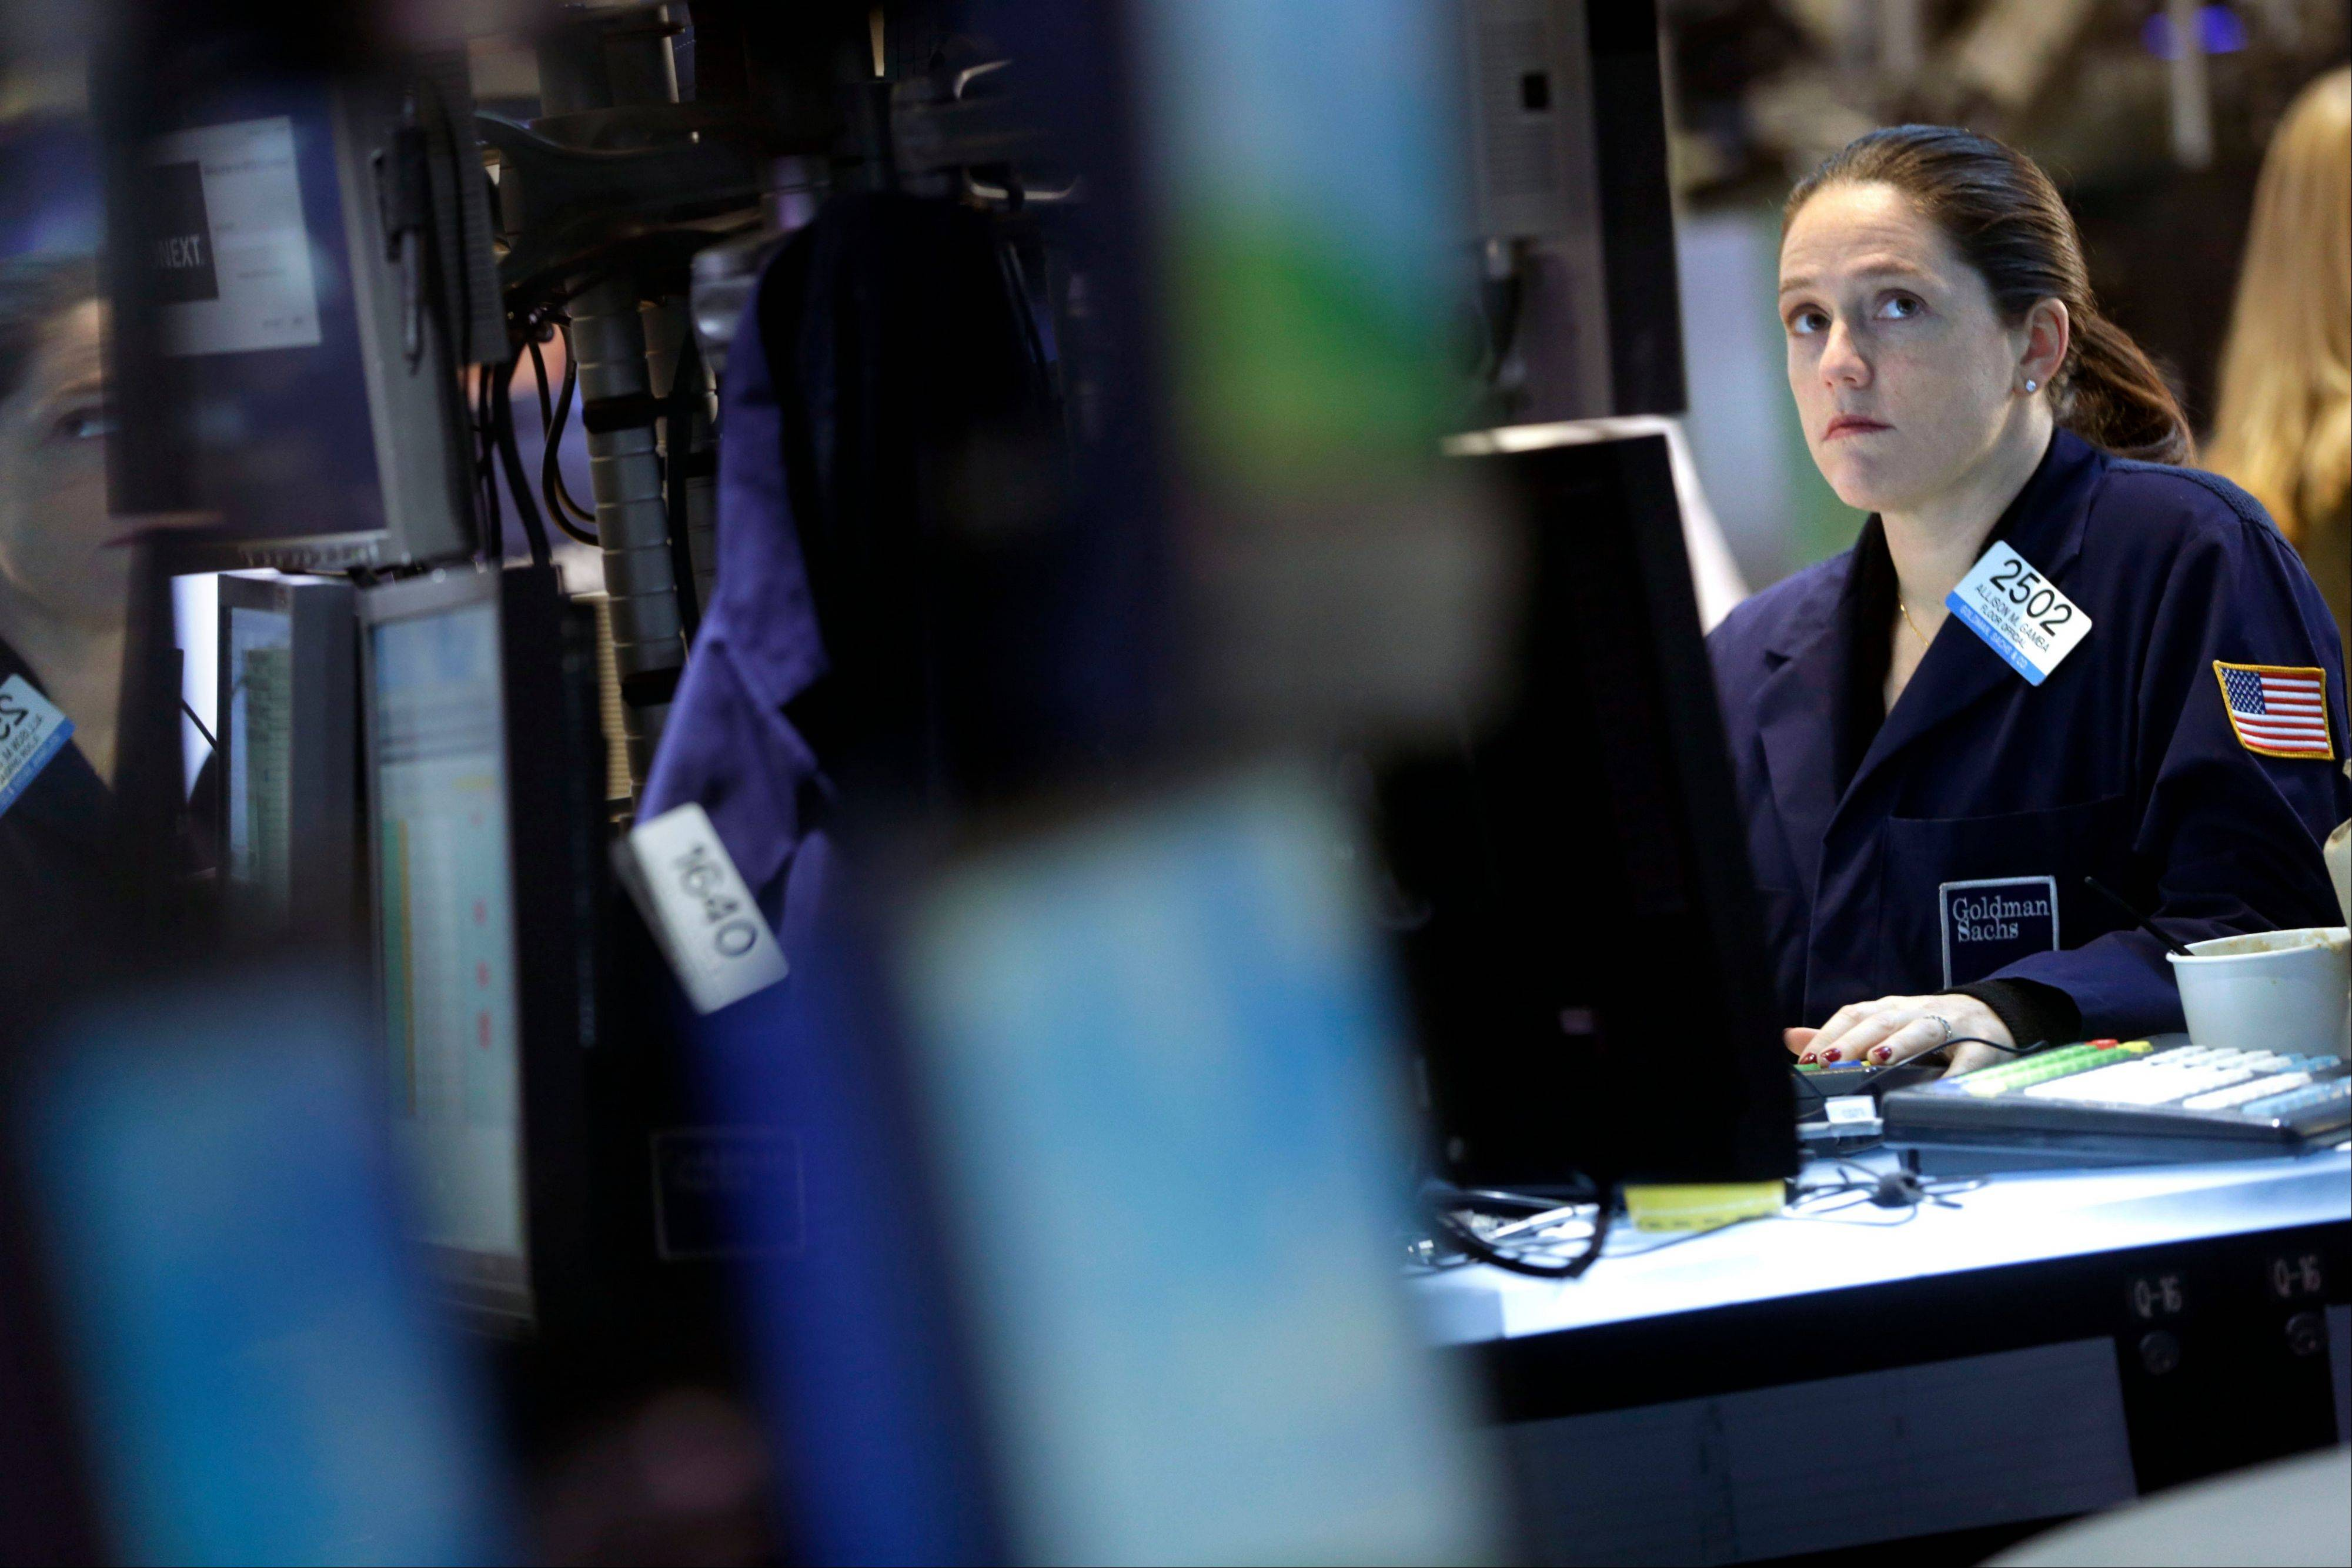 U.S. stocks fell, following the biggest rally in a year for the Standard & Poor's 500 Index, as Federal Reserve policy makers said they will probably end their $85 billion monthly bond-purchase program sometime in 2013.